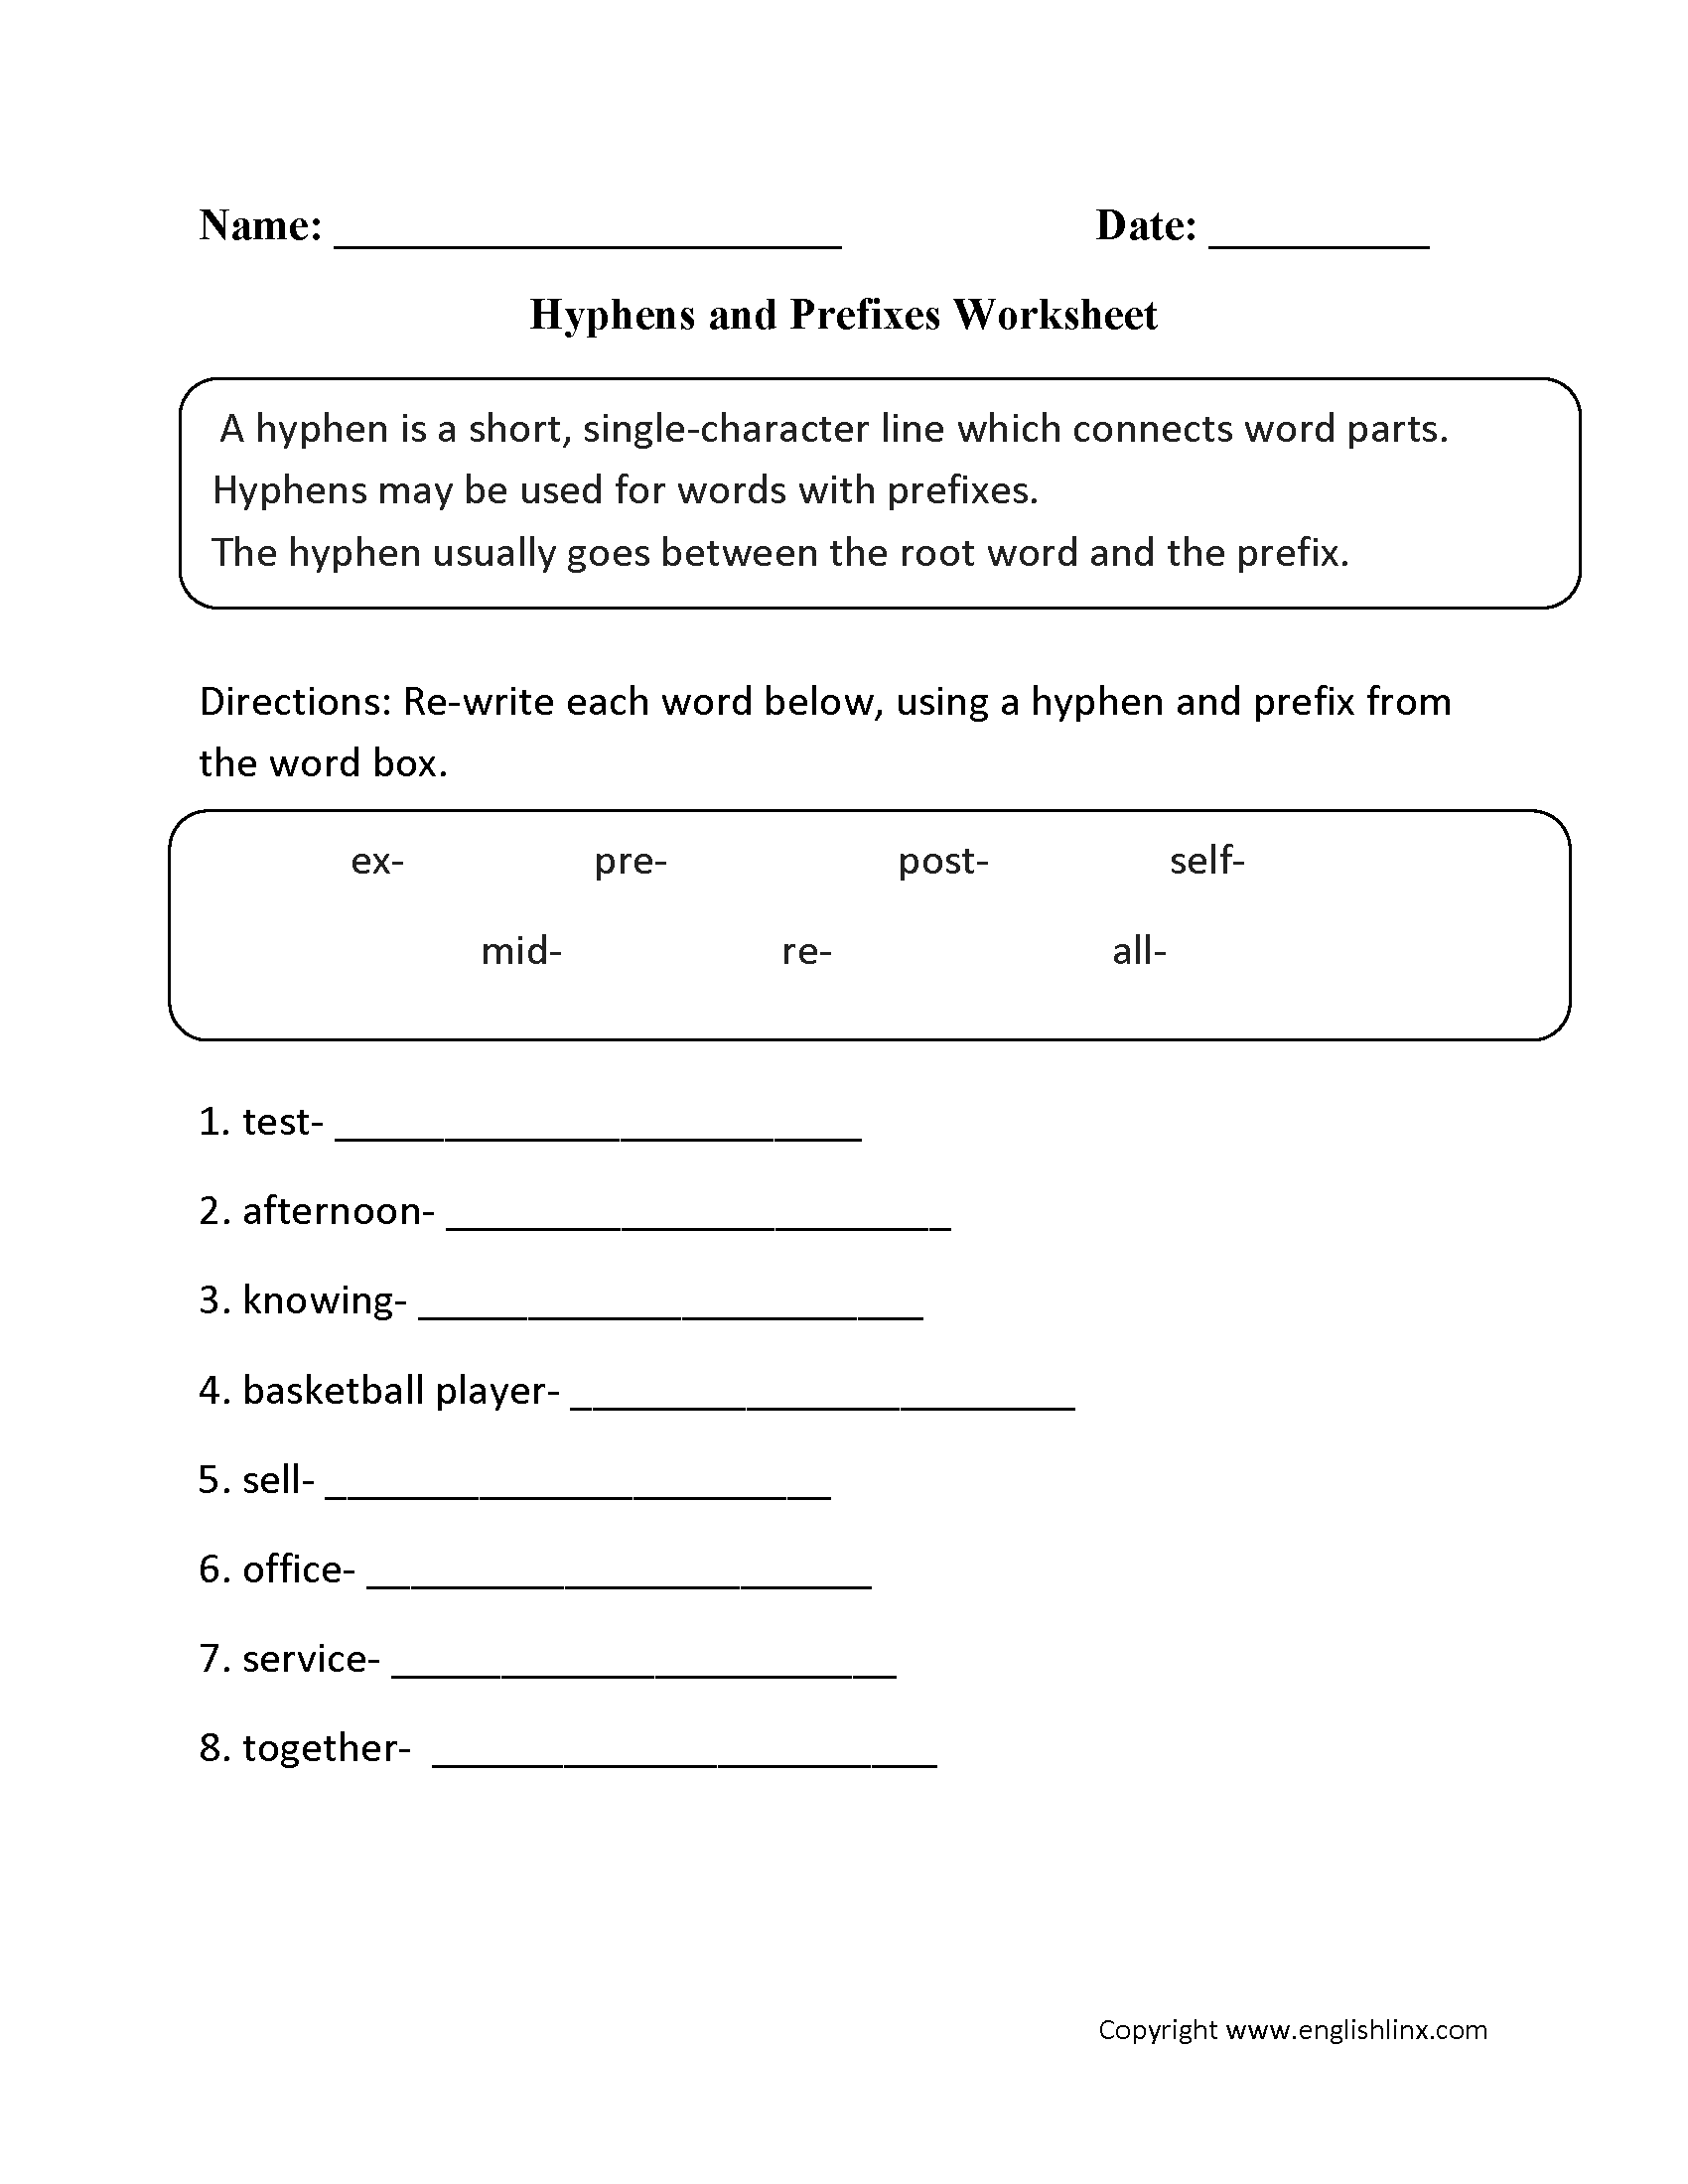 Printables Punctuation Worksheets High School high school punctuation homework help quiz practice lbartman com can you pass this tricky and capitalization